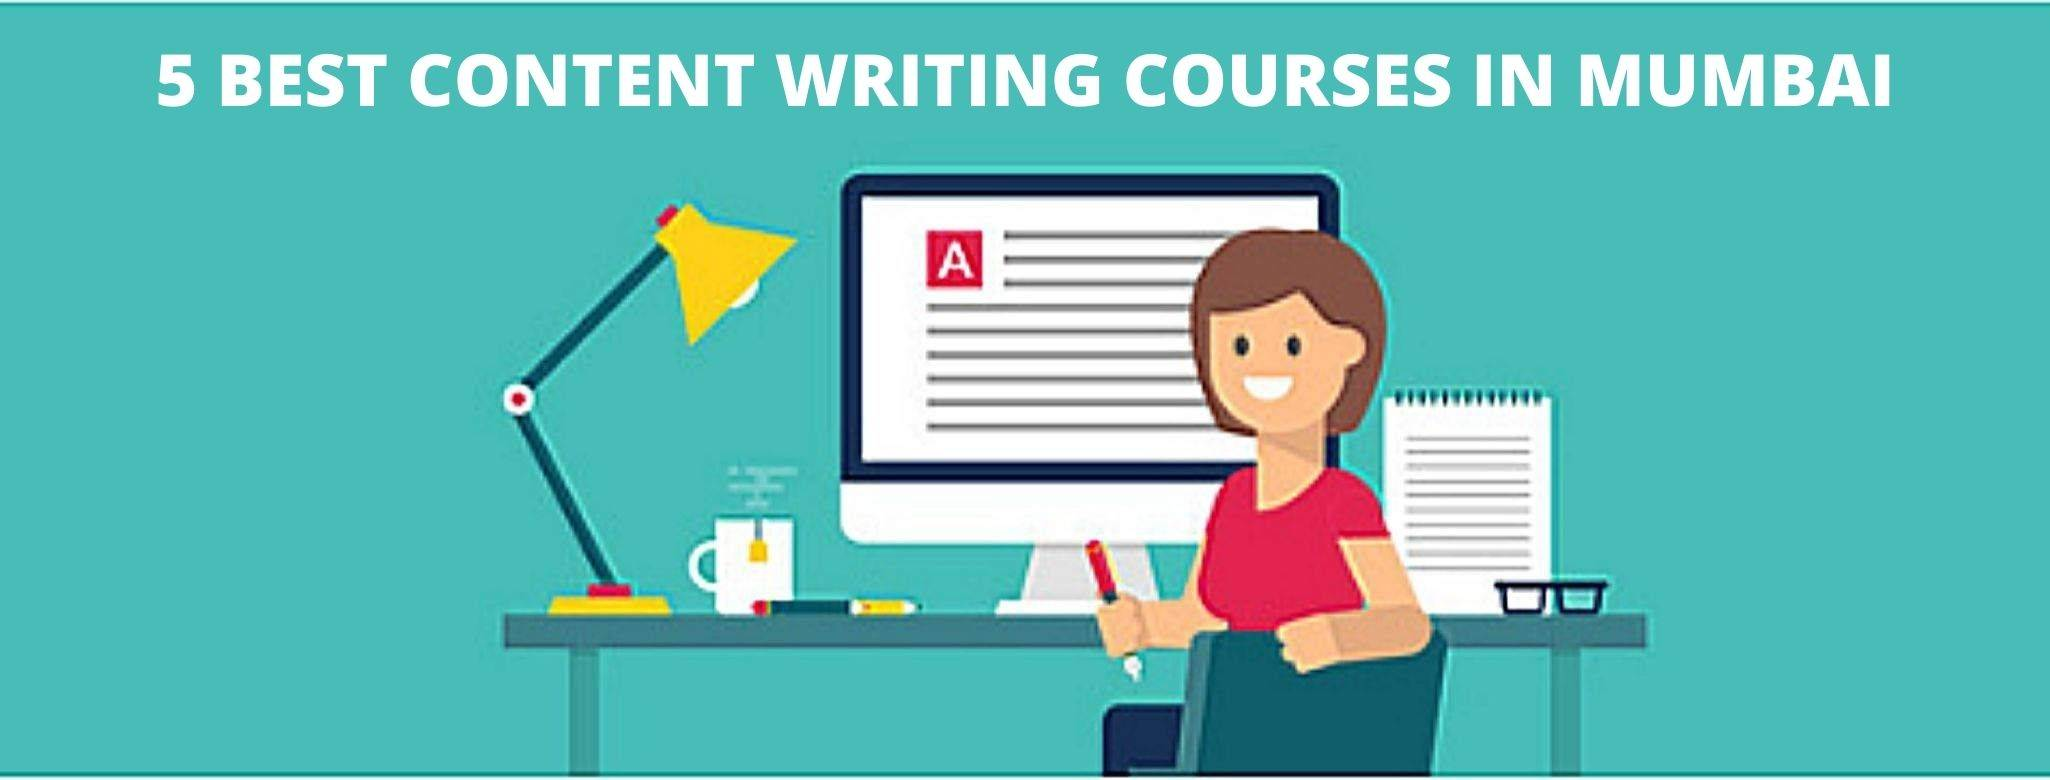 updated listings about the content writing courses in Mumbai